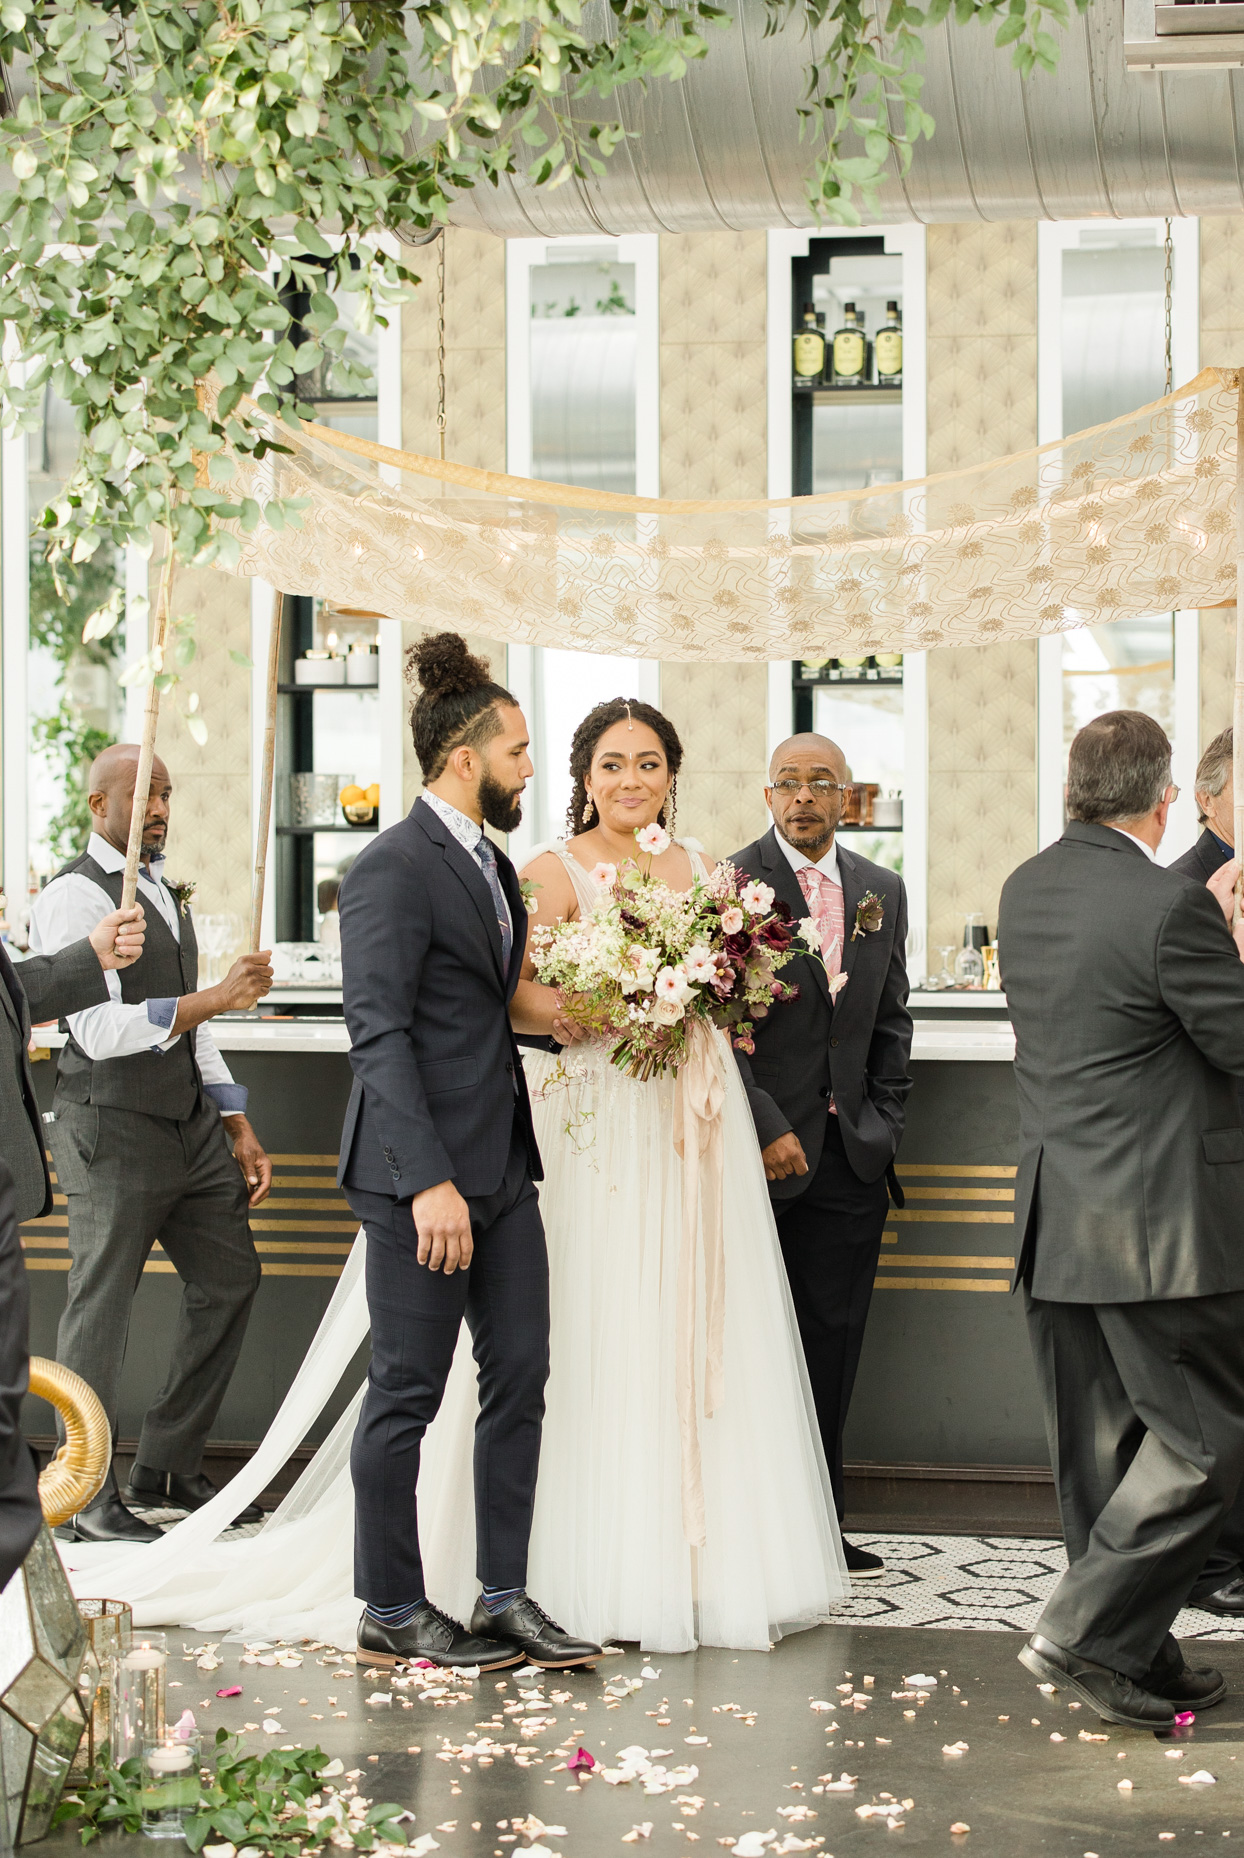 bride processing at wedding ceremony with men in suits